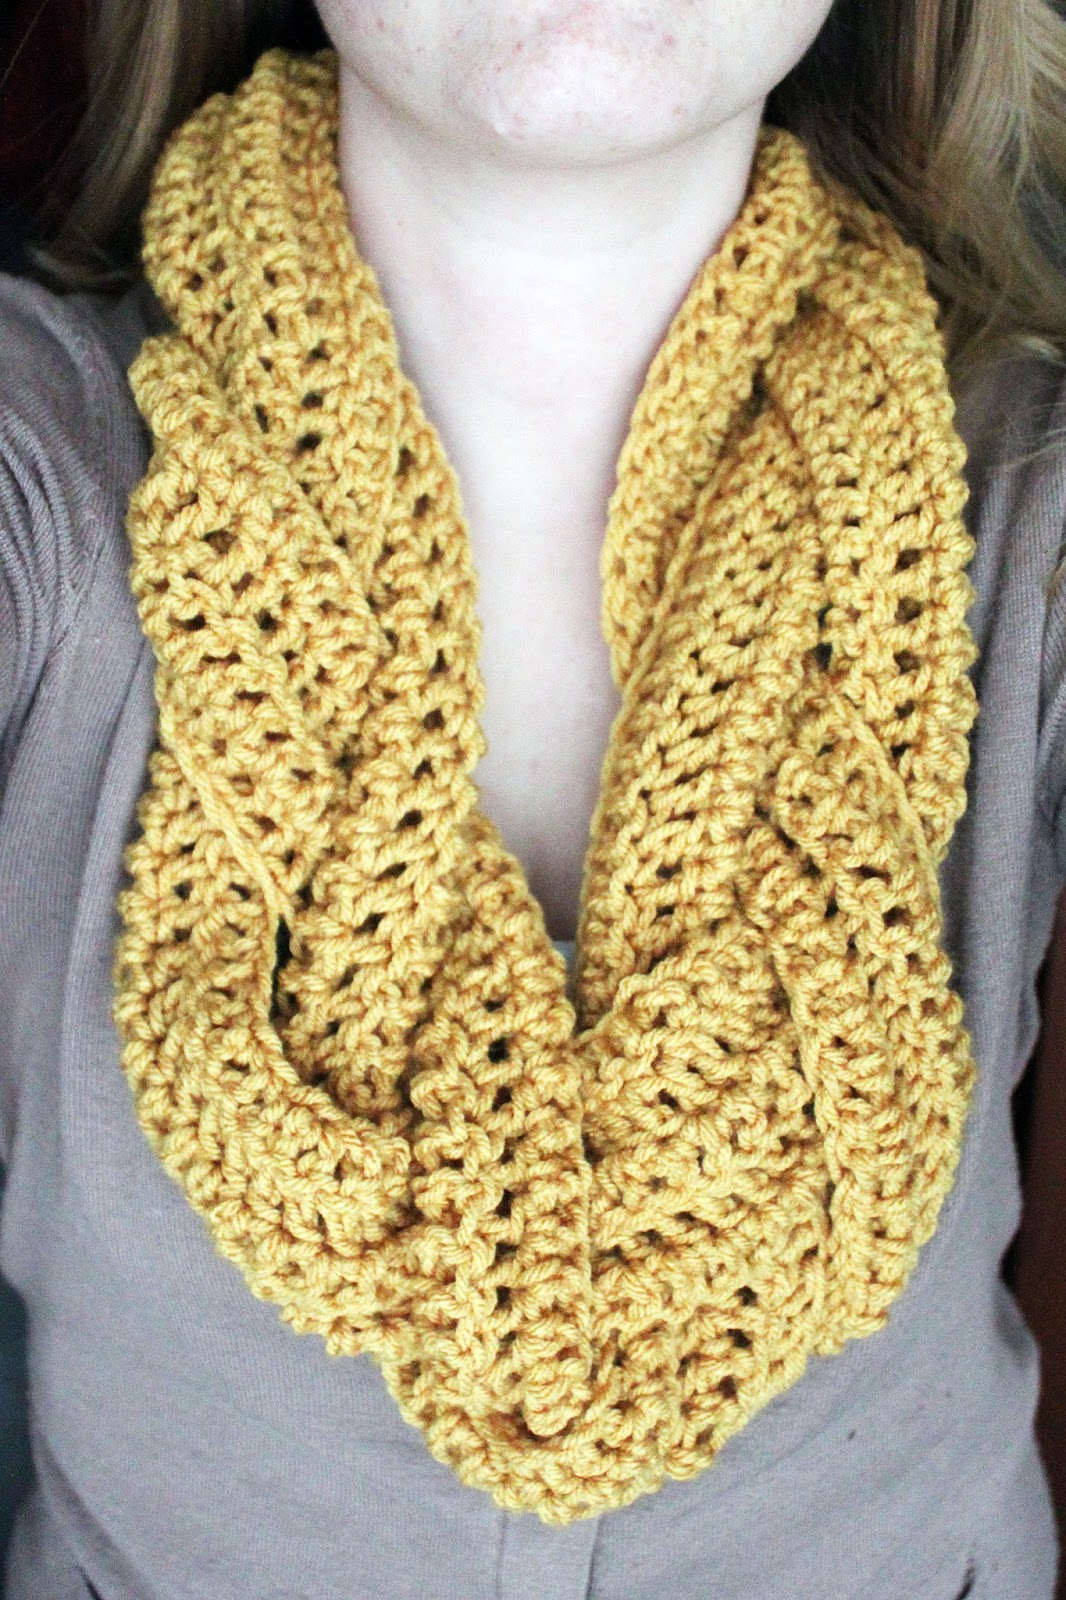 Take your three mini scarves and braid them together (I braided t...